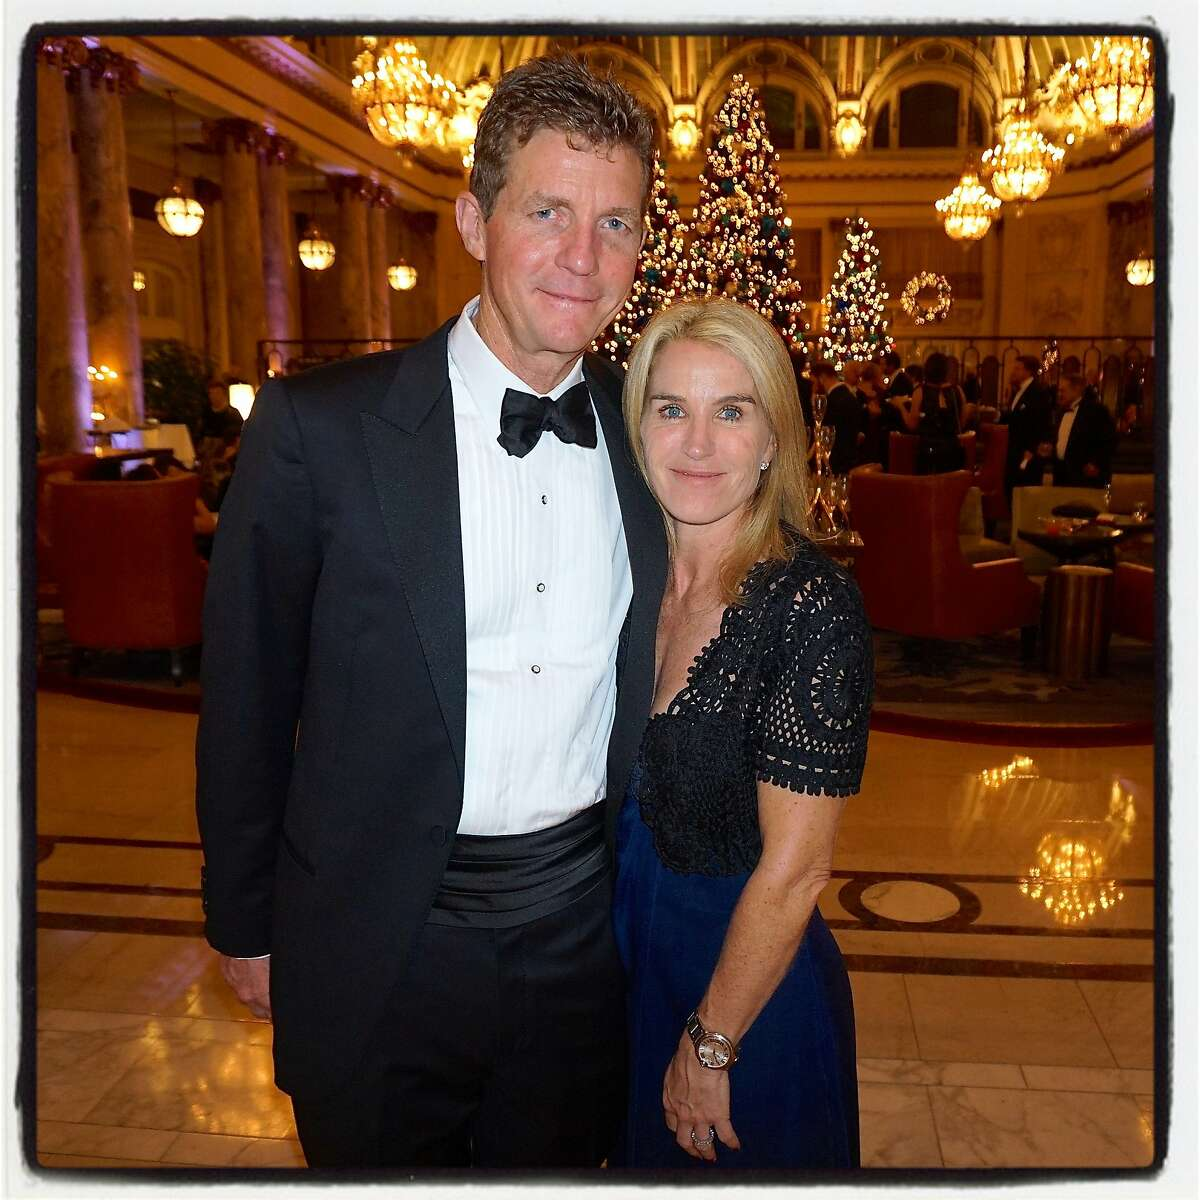 Brooks Walker III and his wife, Summer Tompkins Walker, celebrate the 75th Cotillion at the Palace Hotel. Dec 2016.